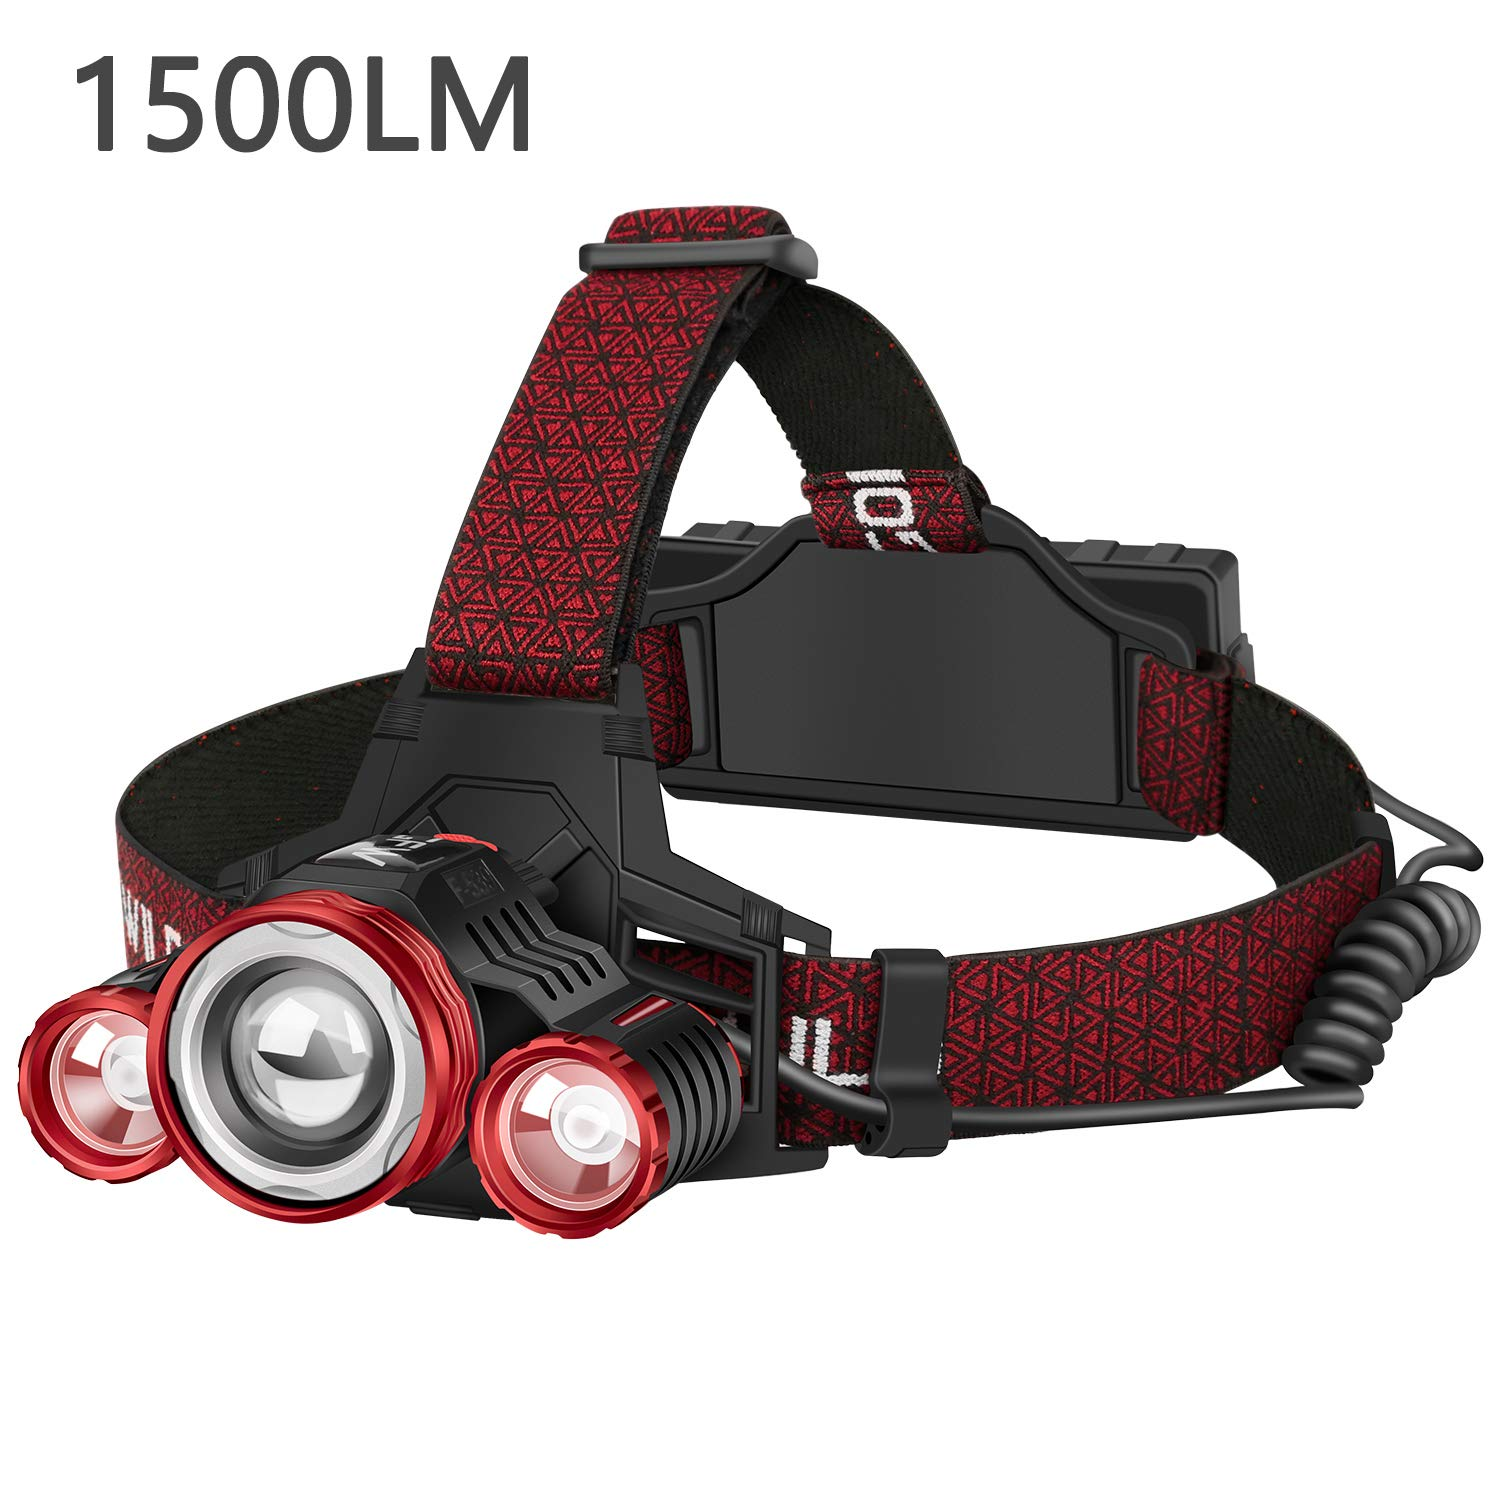 Rechargeable Headlamp, GOFORWILD Reliable 1500 Lumen LED Headlamp Flashlight, With 2X2200mAh 18650 Batteries,Battery Level Display, Safety Light, 4 Light Modes, Head Lights for Camping,Hiking, Outdoor